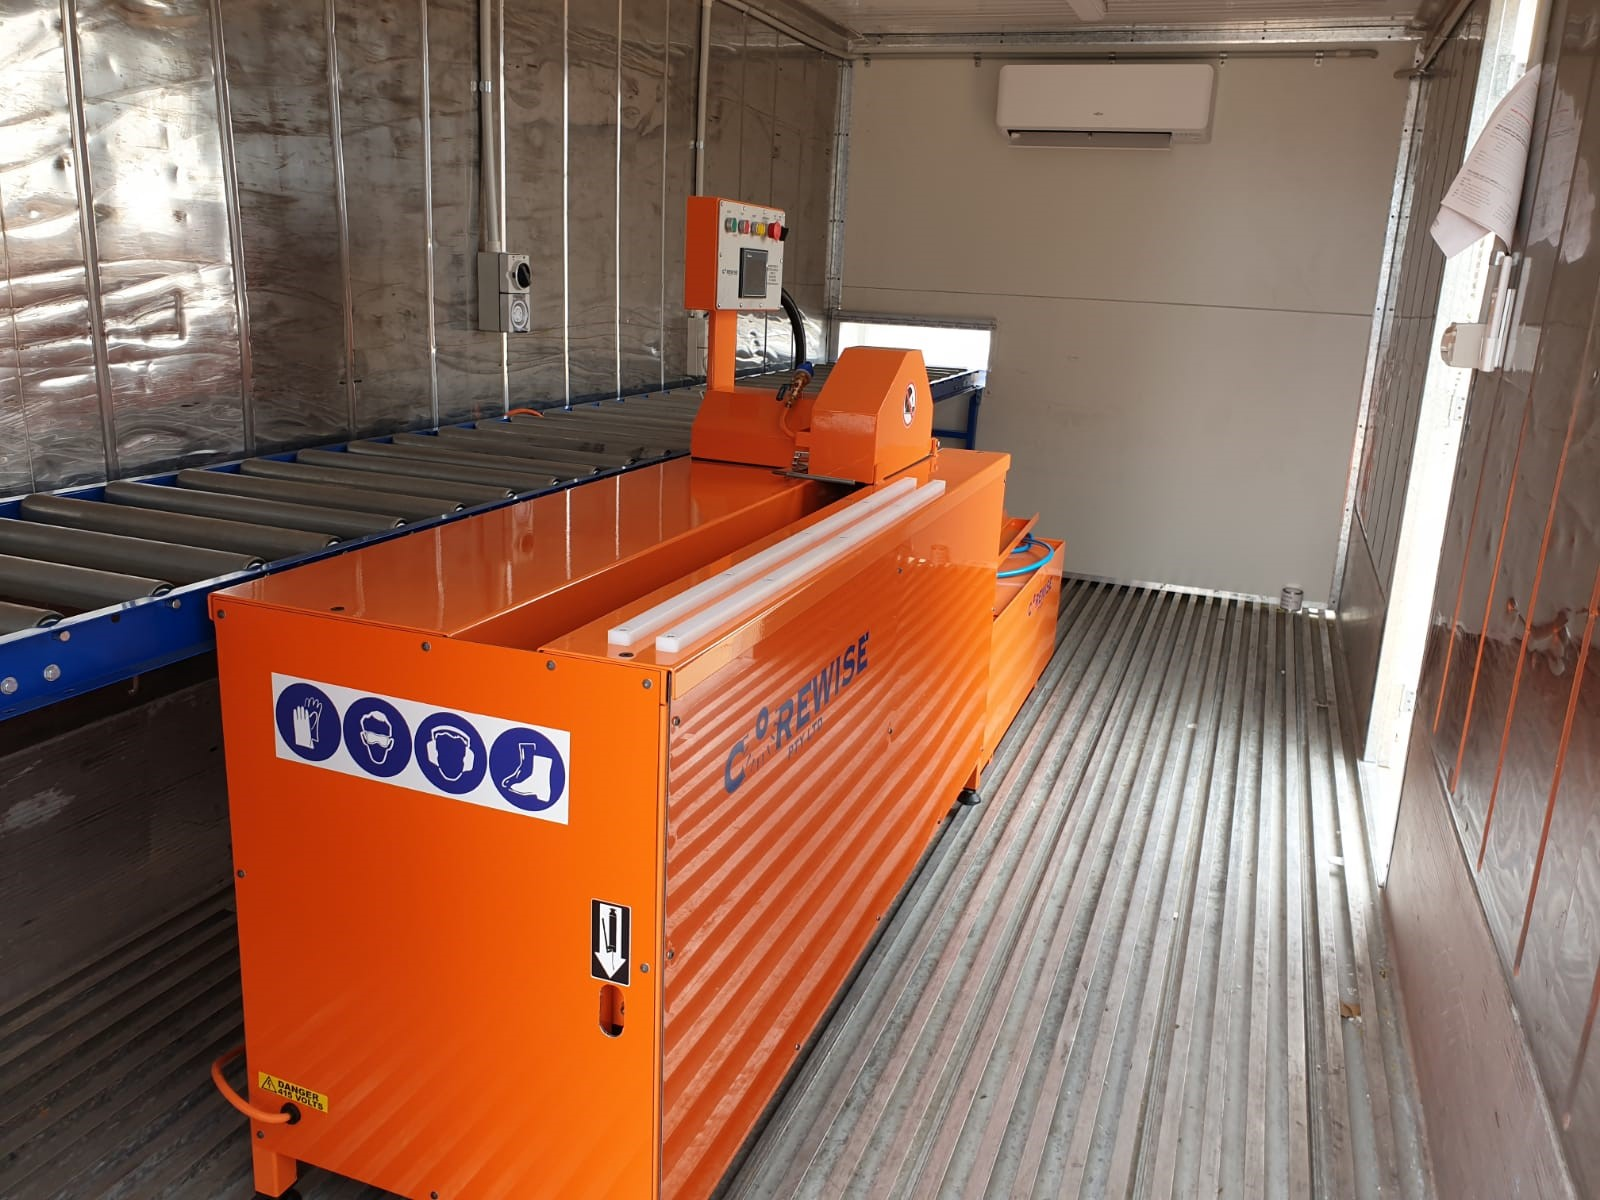 The Corewise Automatic Core Saw inside a container